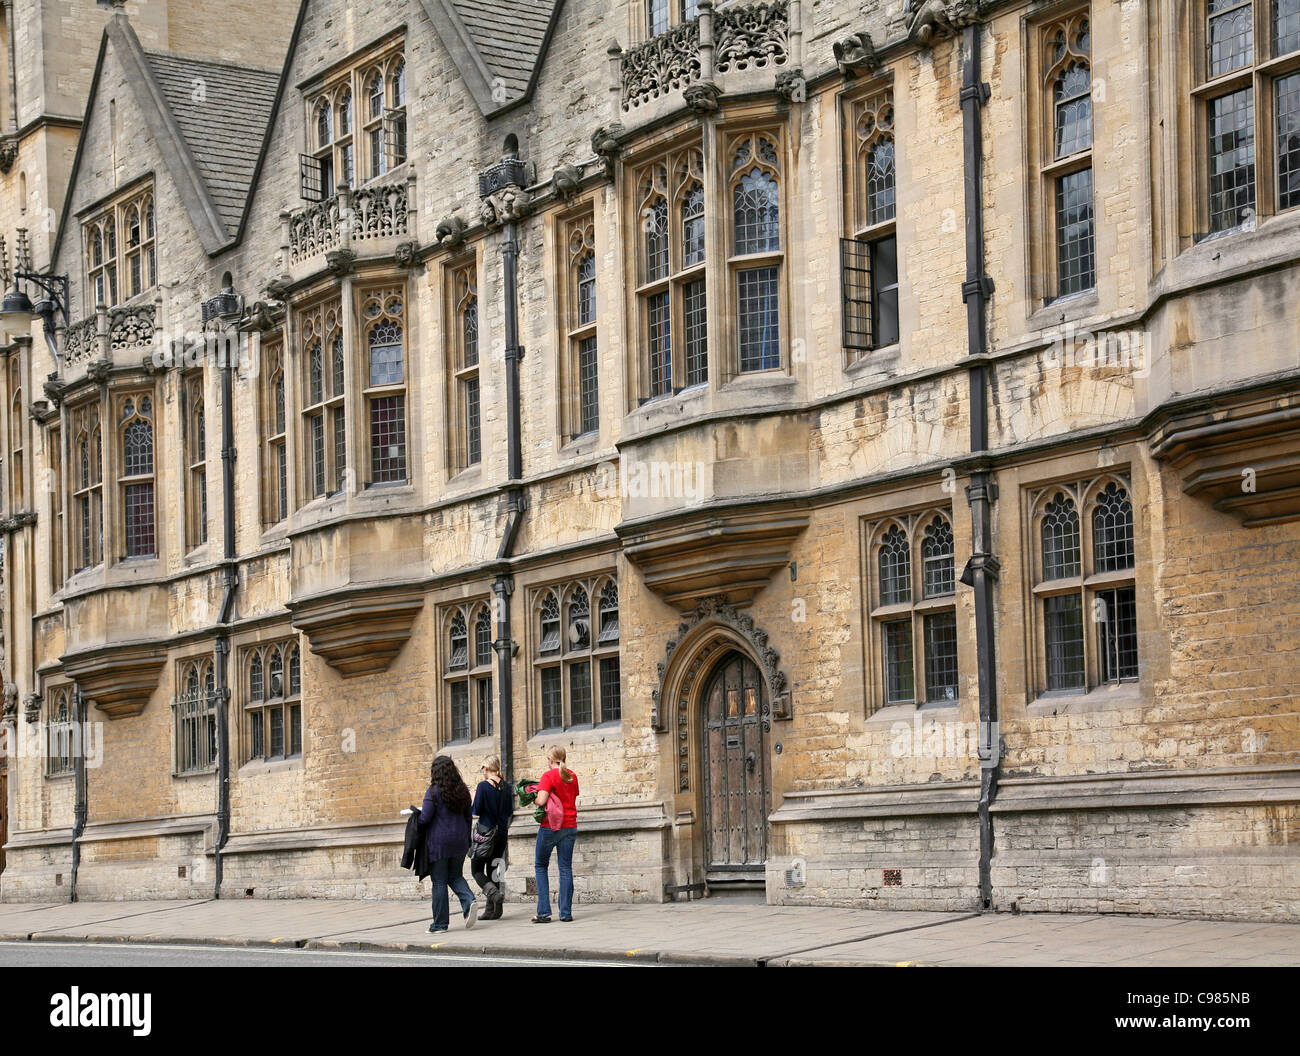 Oxford University, Brasenose College - Stock Image